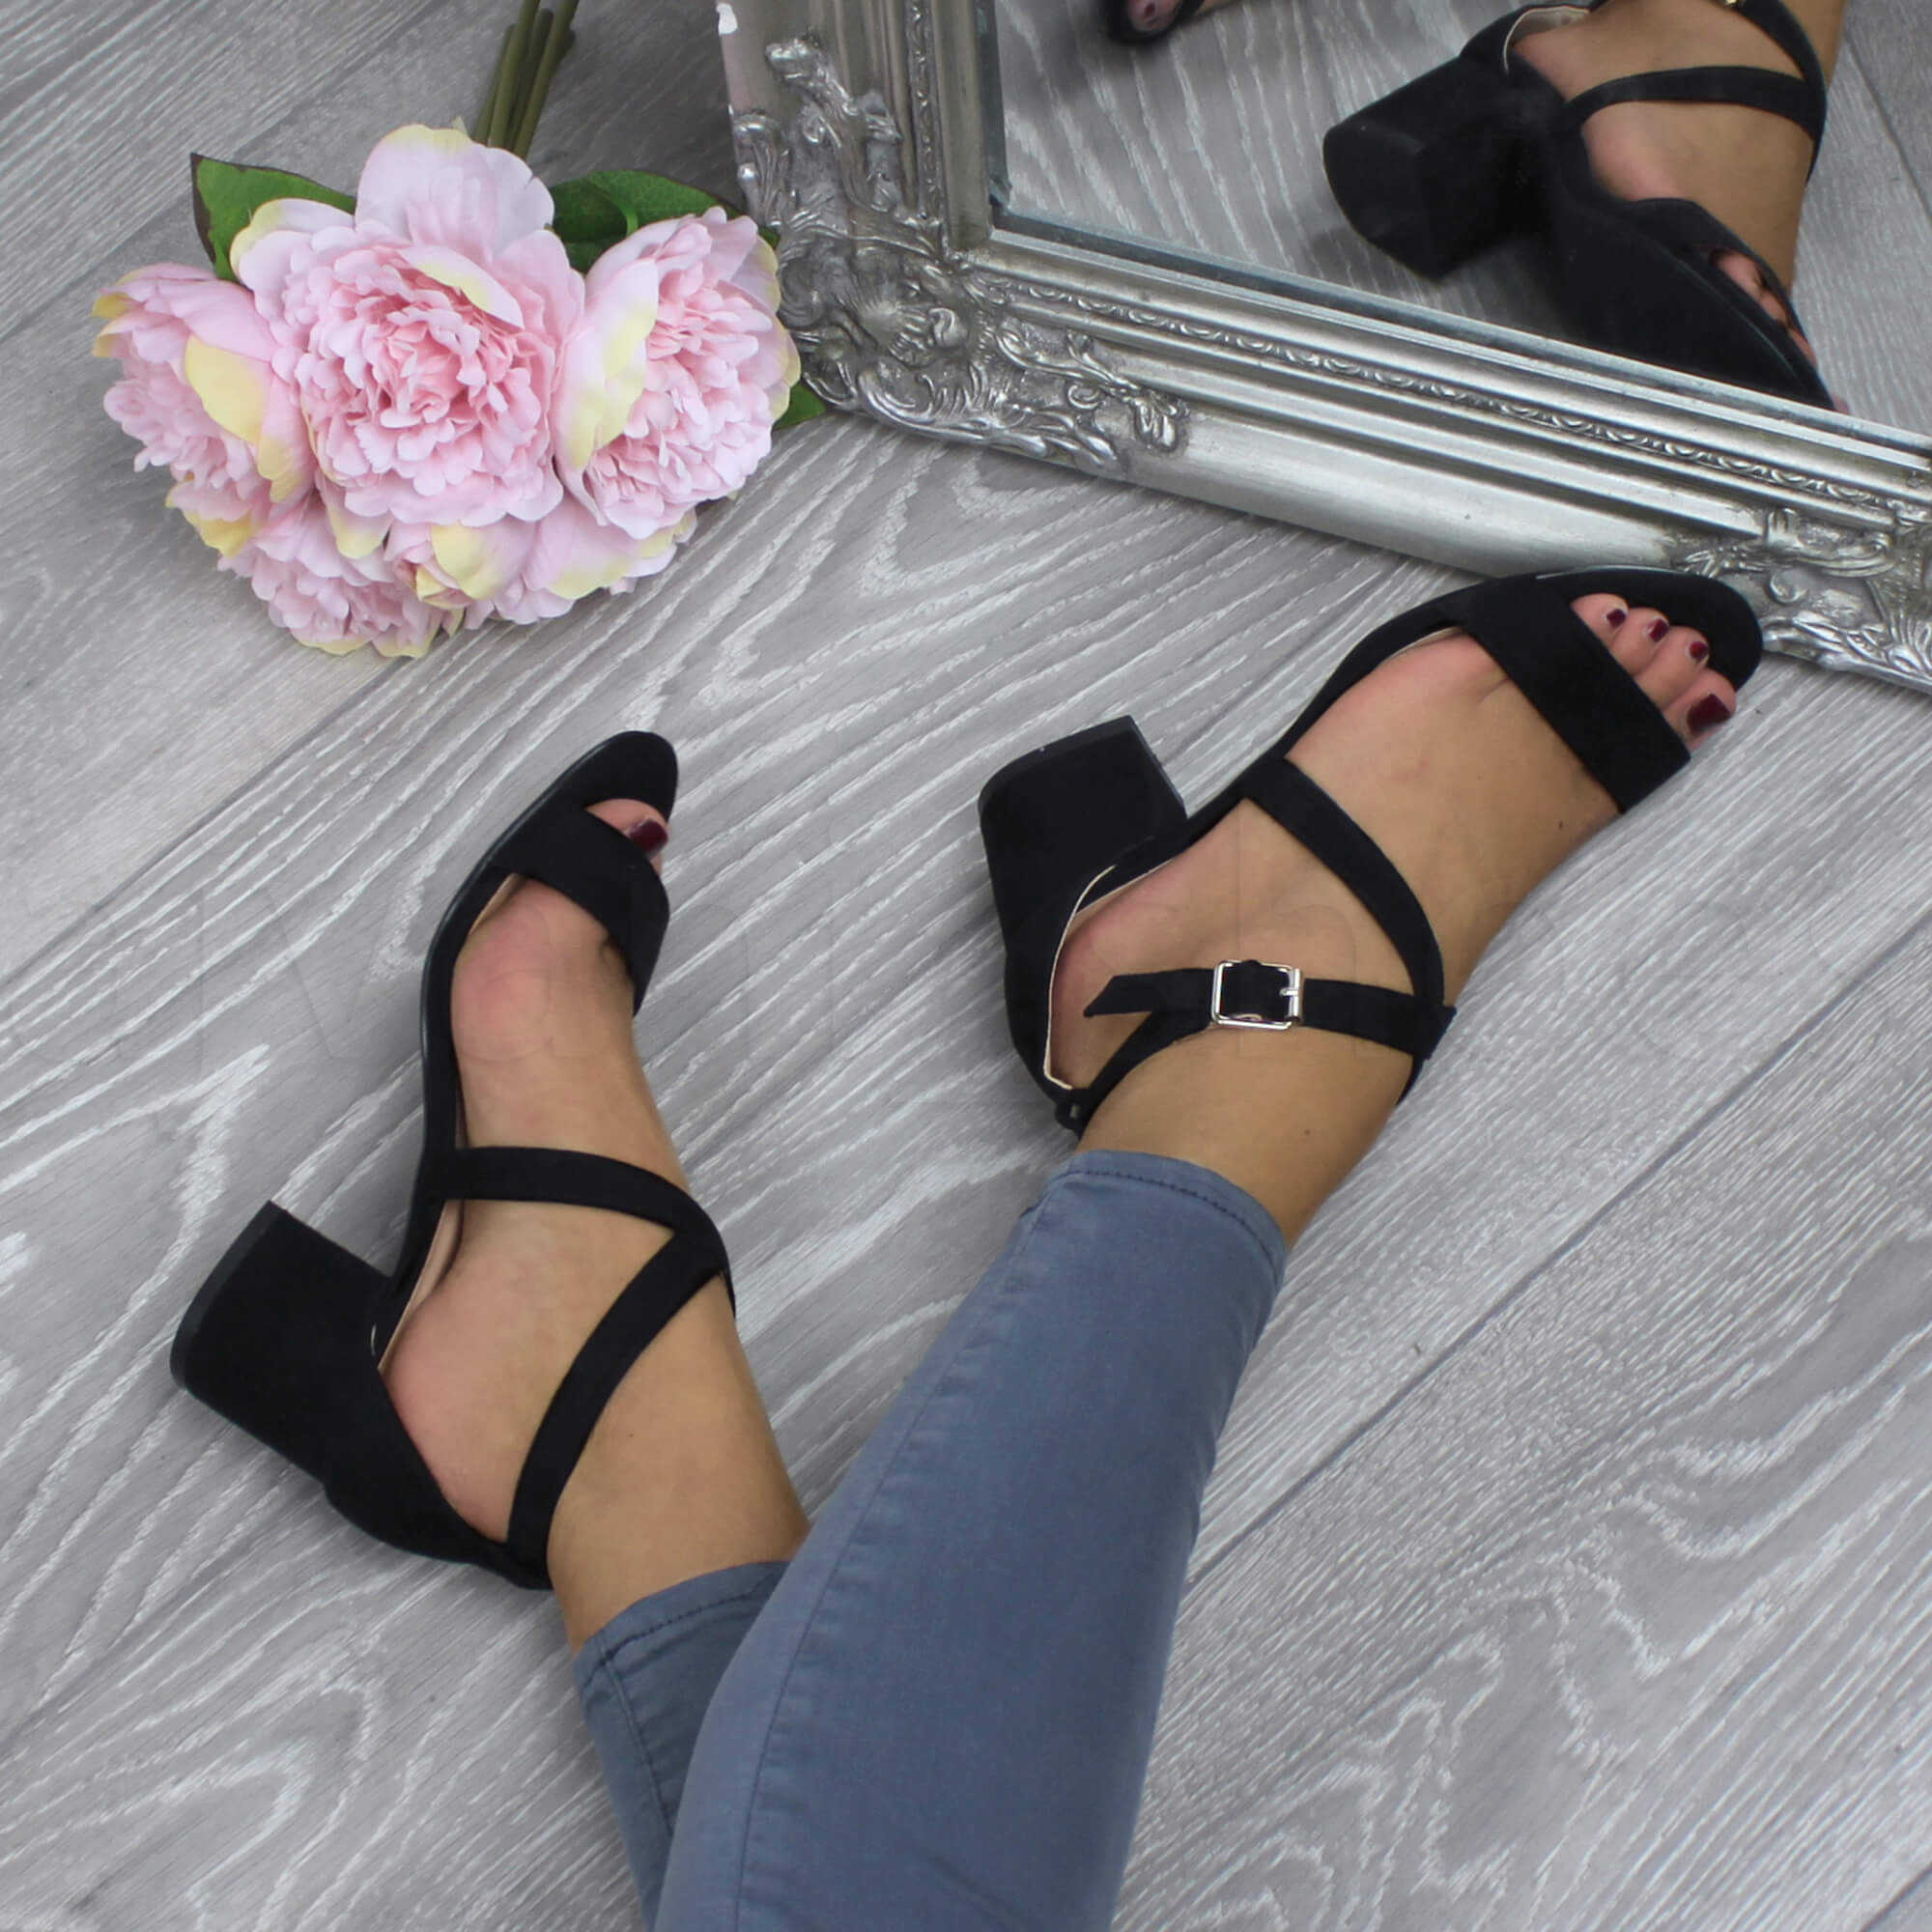 WOMENS-LADIES-MID-LOW-BLOCK-HEEL-CROSS-STRAPS-PARTY-STRAPPY-SANDALS-SHOES-SIZE thumbnail 8